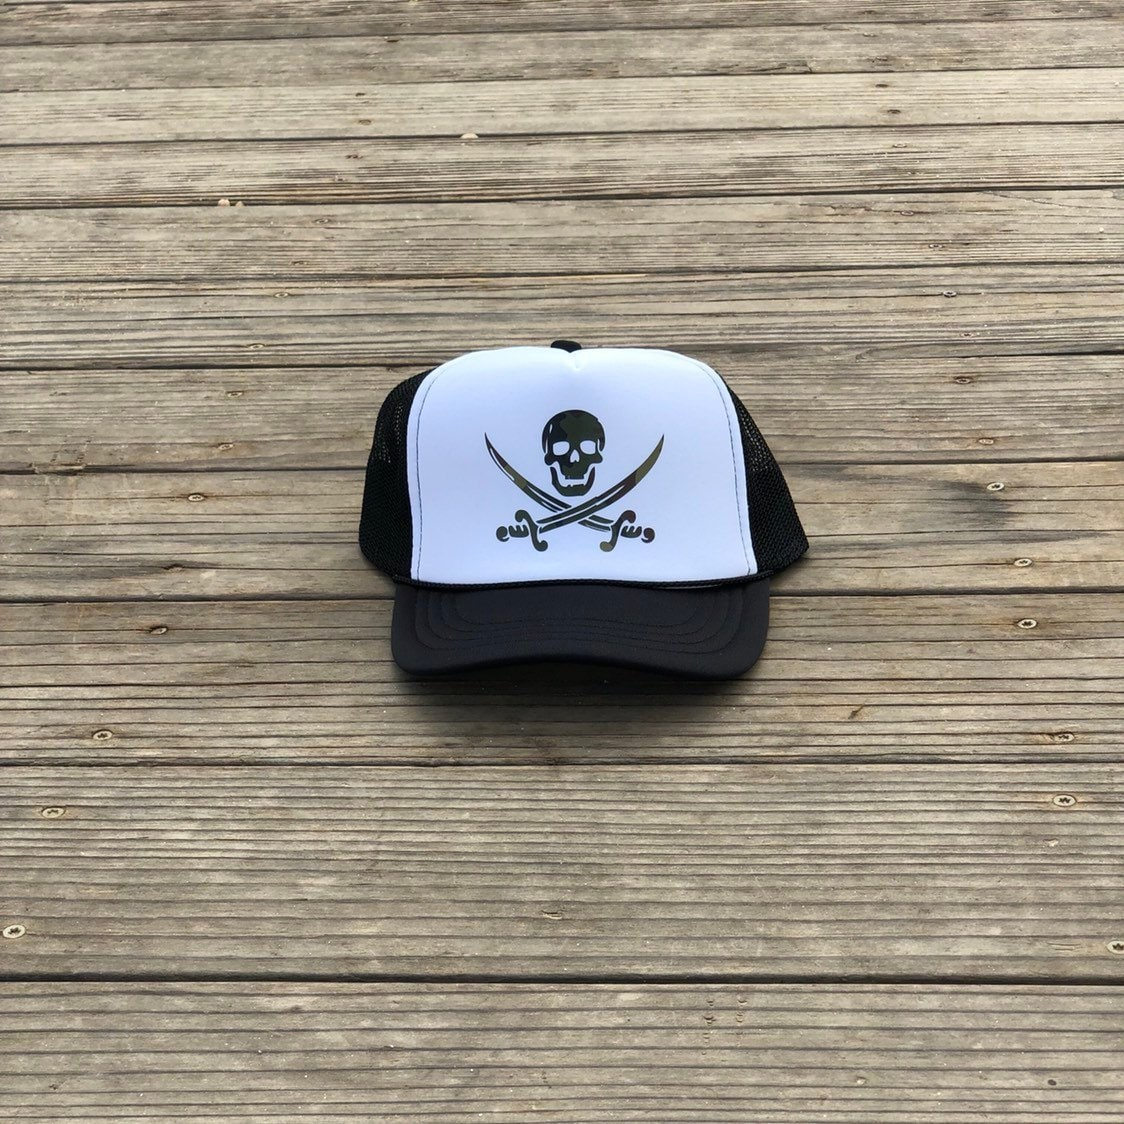 Childrens black and white foam trucker hat with green camouflage pirate 7b9bf67dcaf